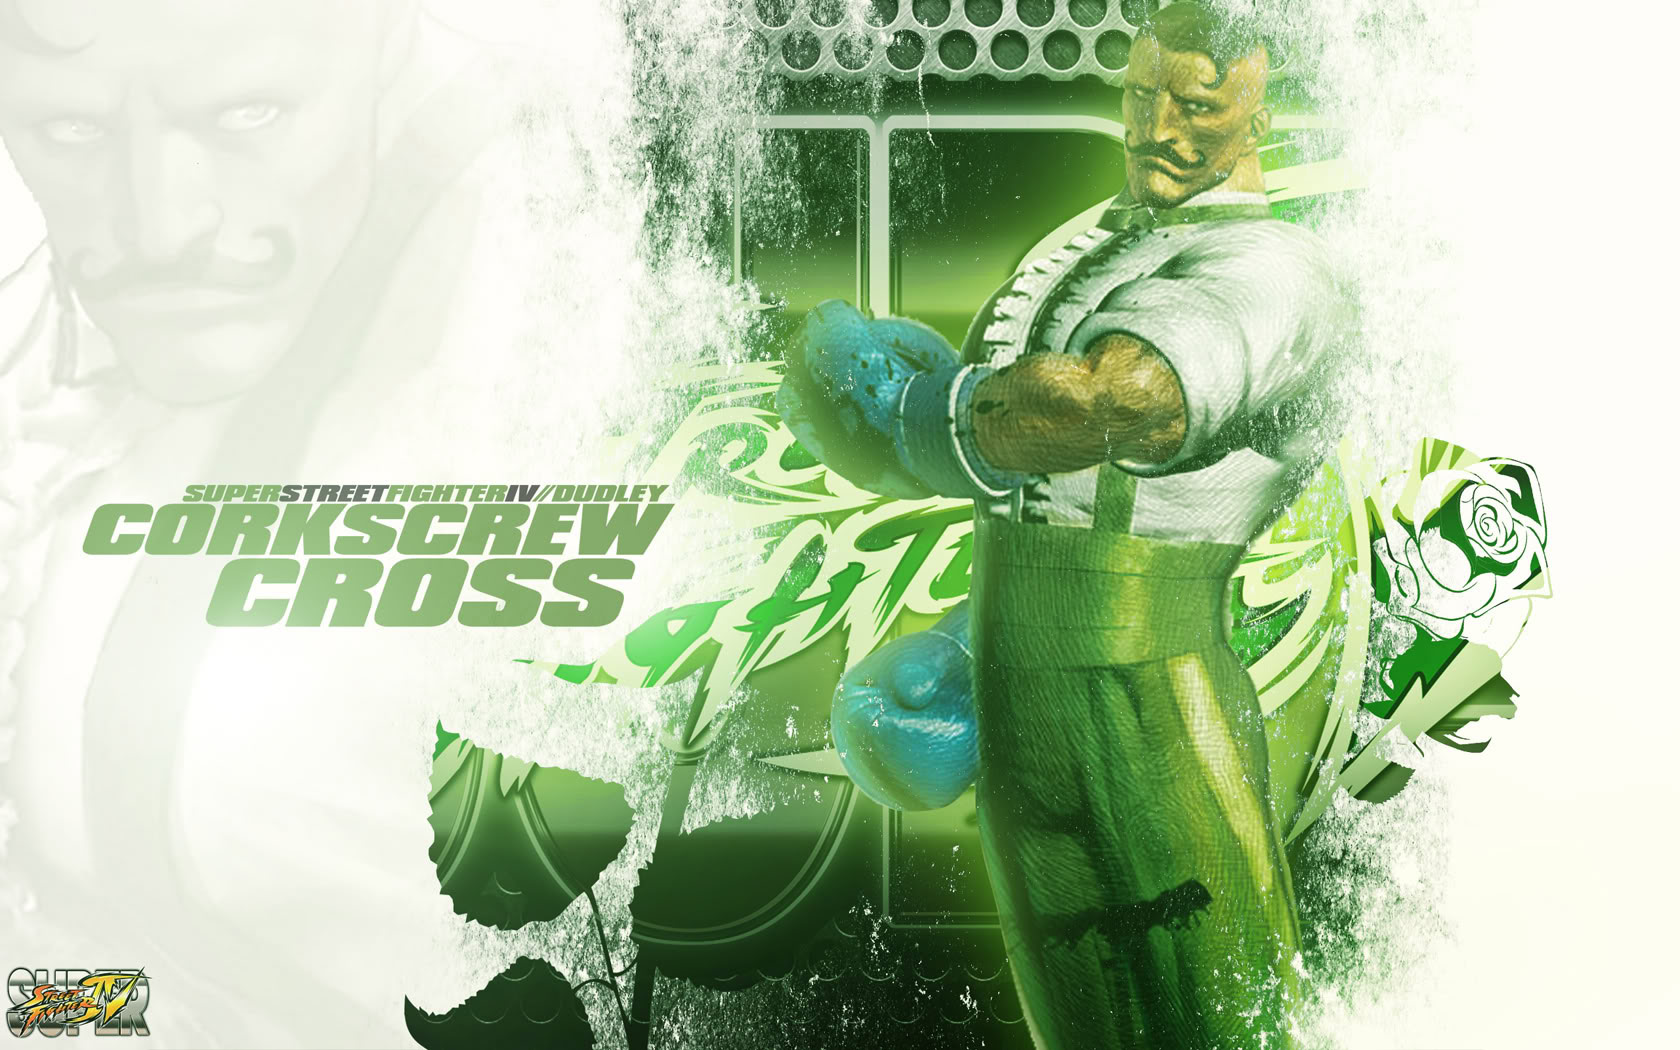 Dudley Super Street Fighter 4 wallpaper by BossLogic